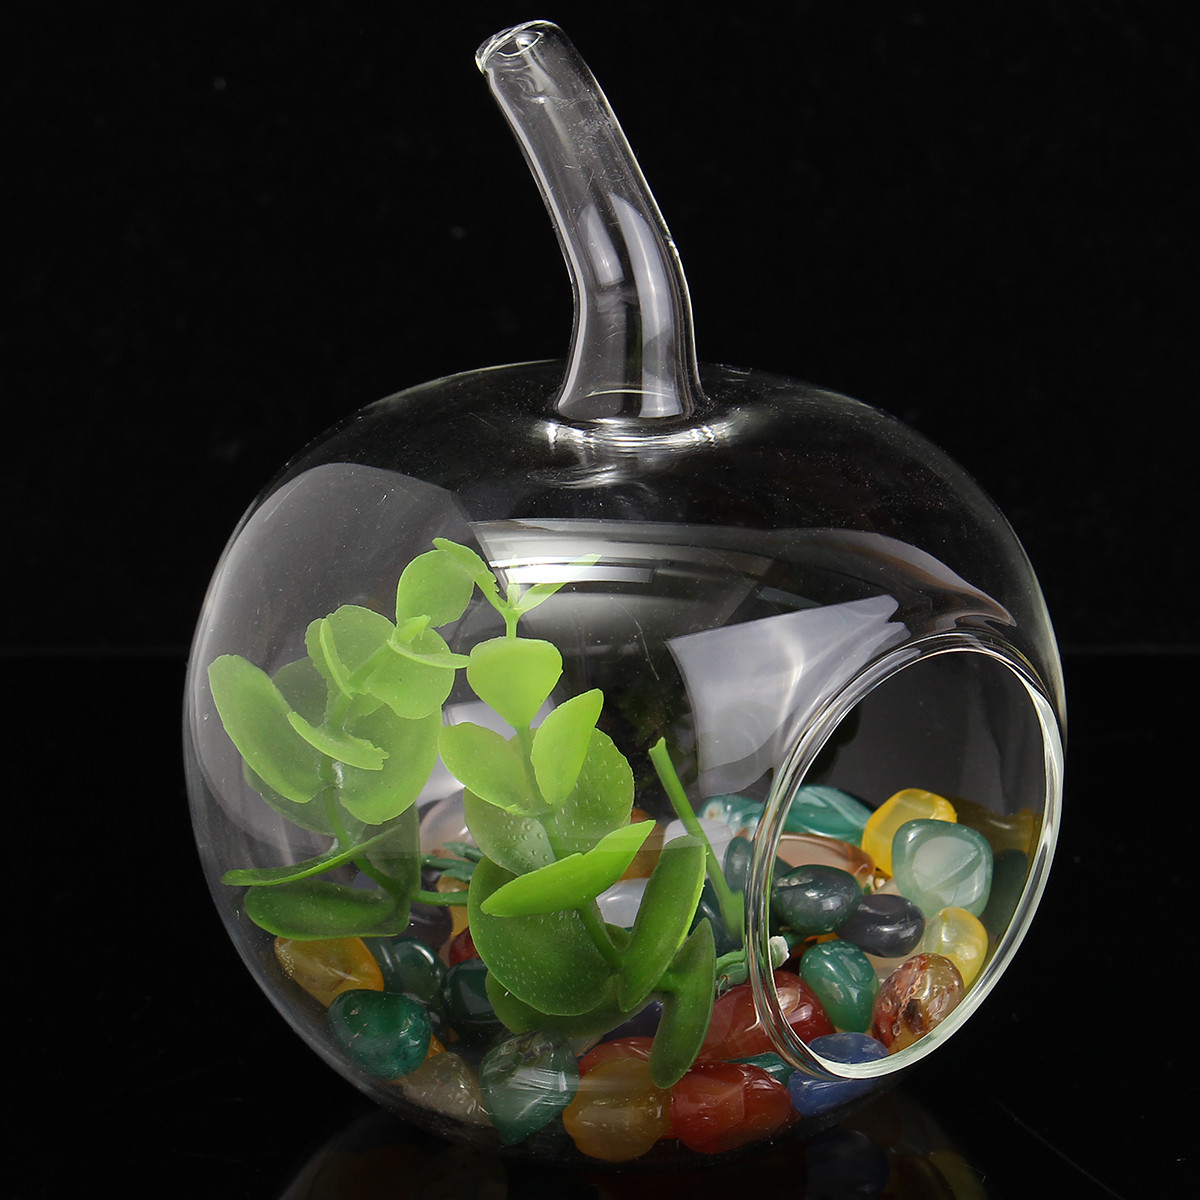 double glass vase of crystal glass flower vase terrarium container micro landscape glass for crystal glass flower vase terrarium container micro landscape glass bottles decor